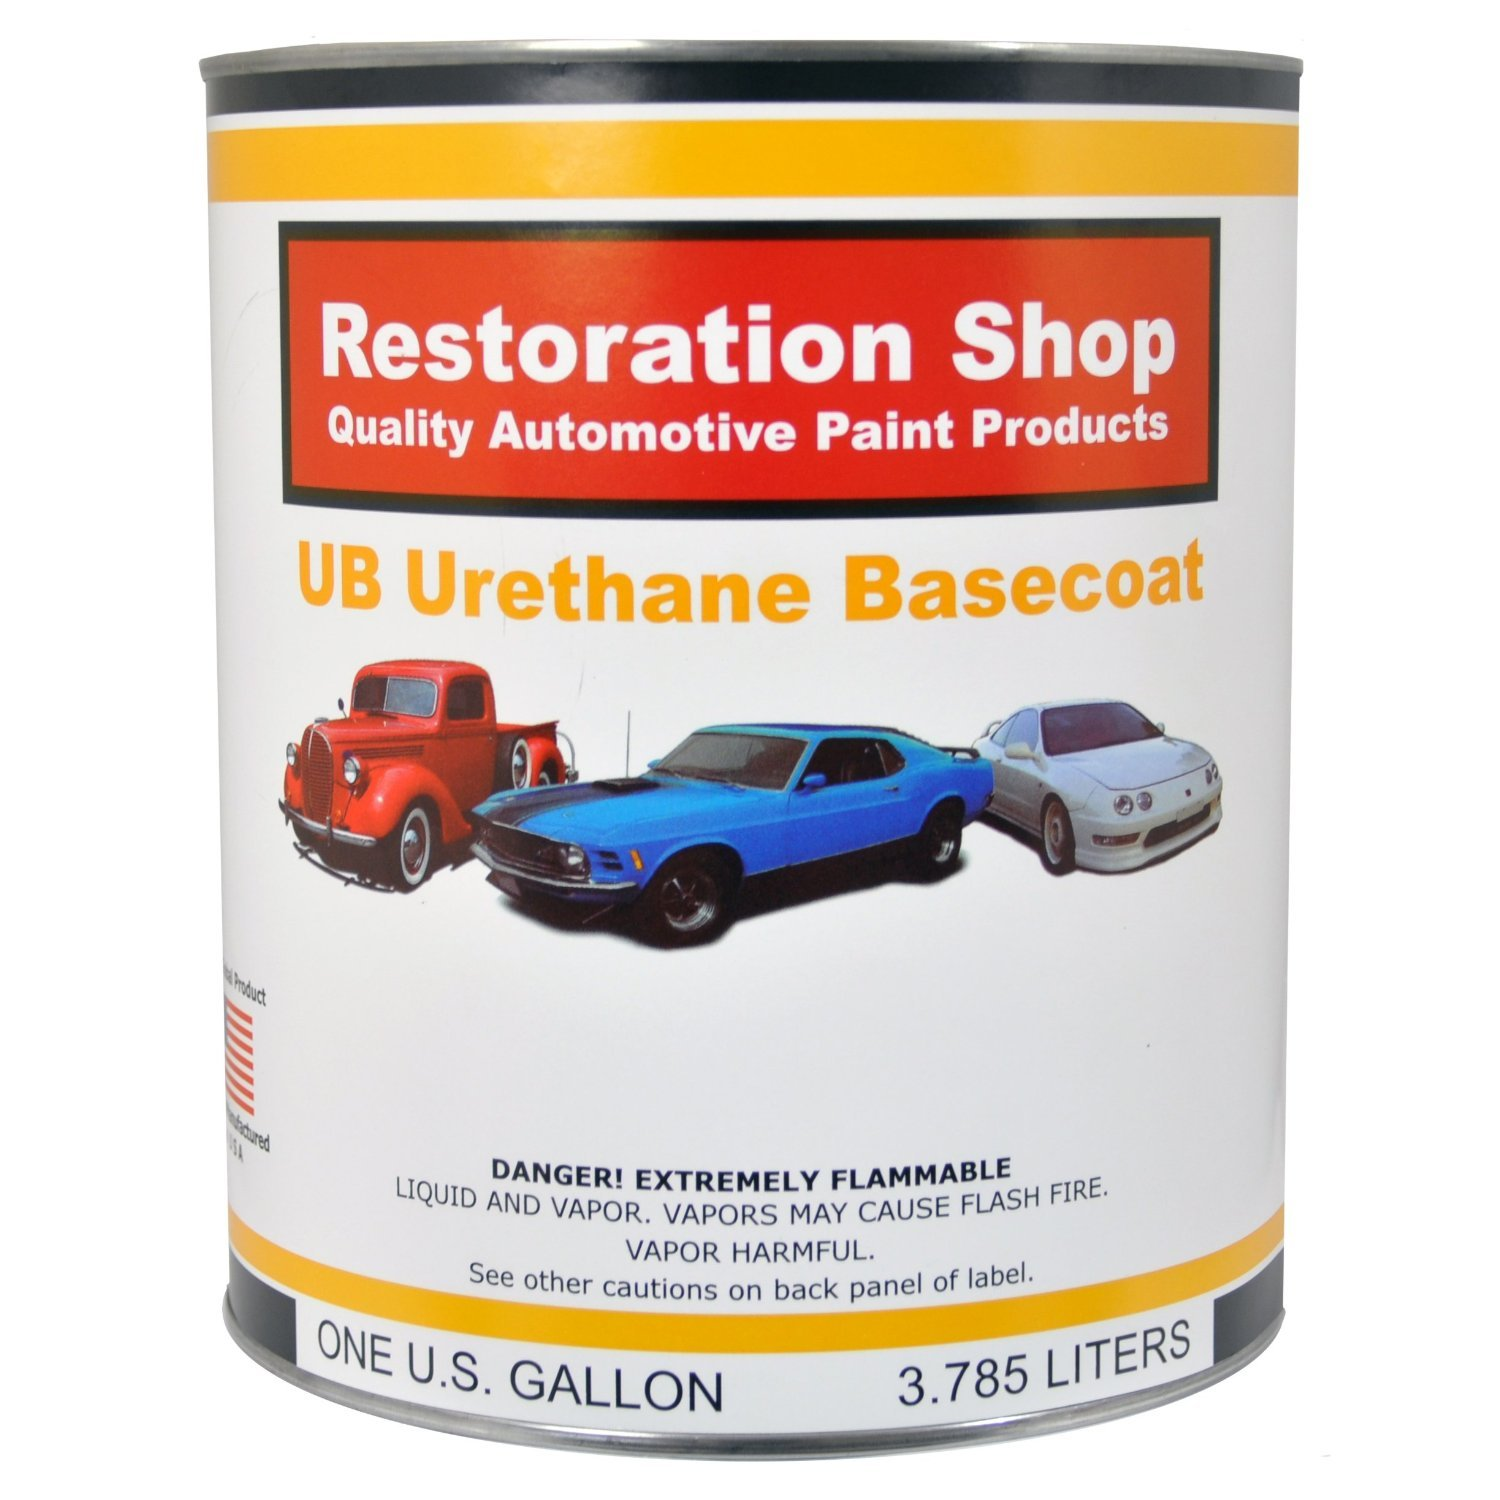 Restoration Shop - Gallon ONLY - PERFORMANCE BRIGHT WHITE Urethane Basecoat Car Auto Paint